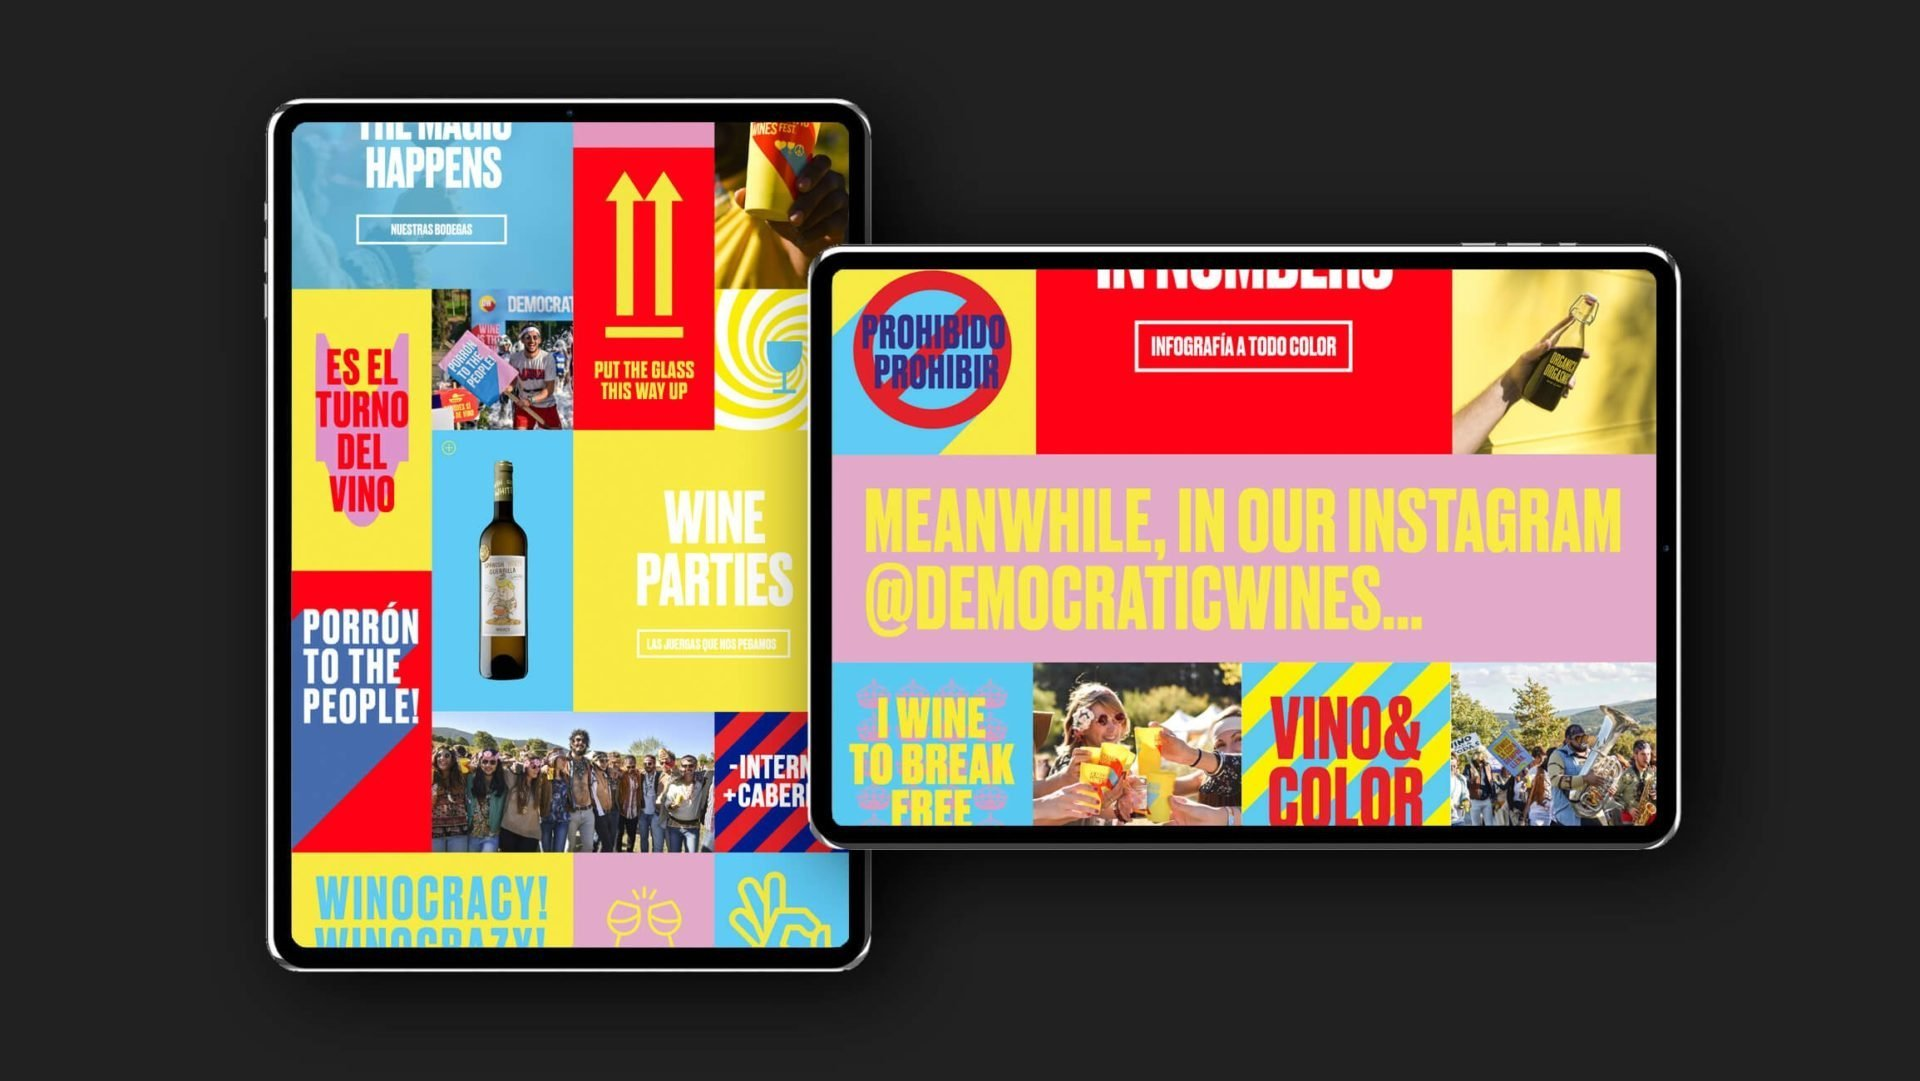 digital-diseño-tablet-vino-democratic-wines-vermu-el-bandarra